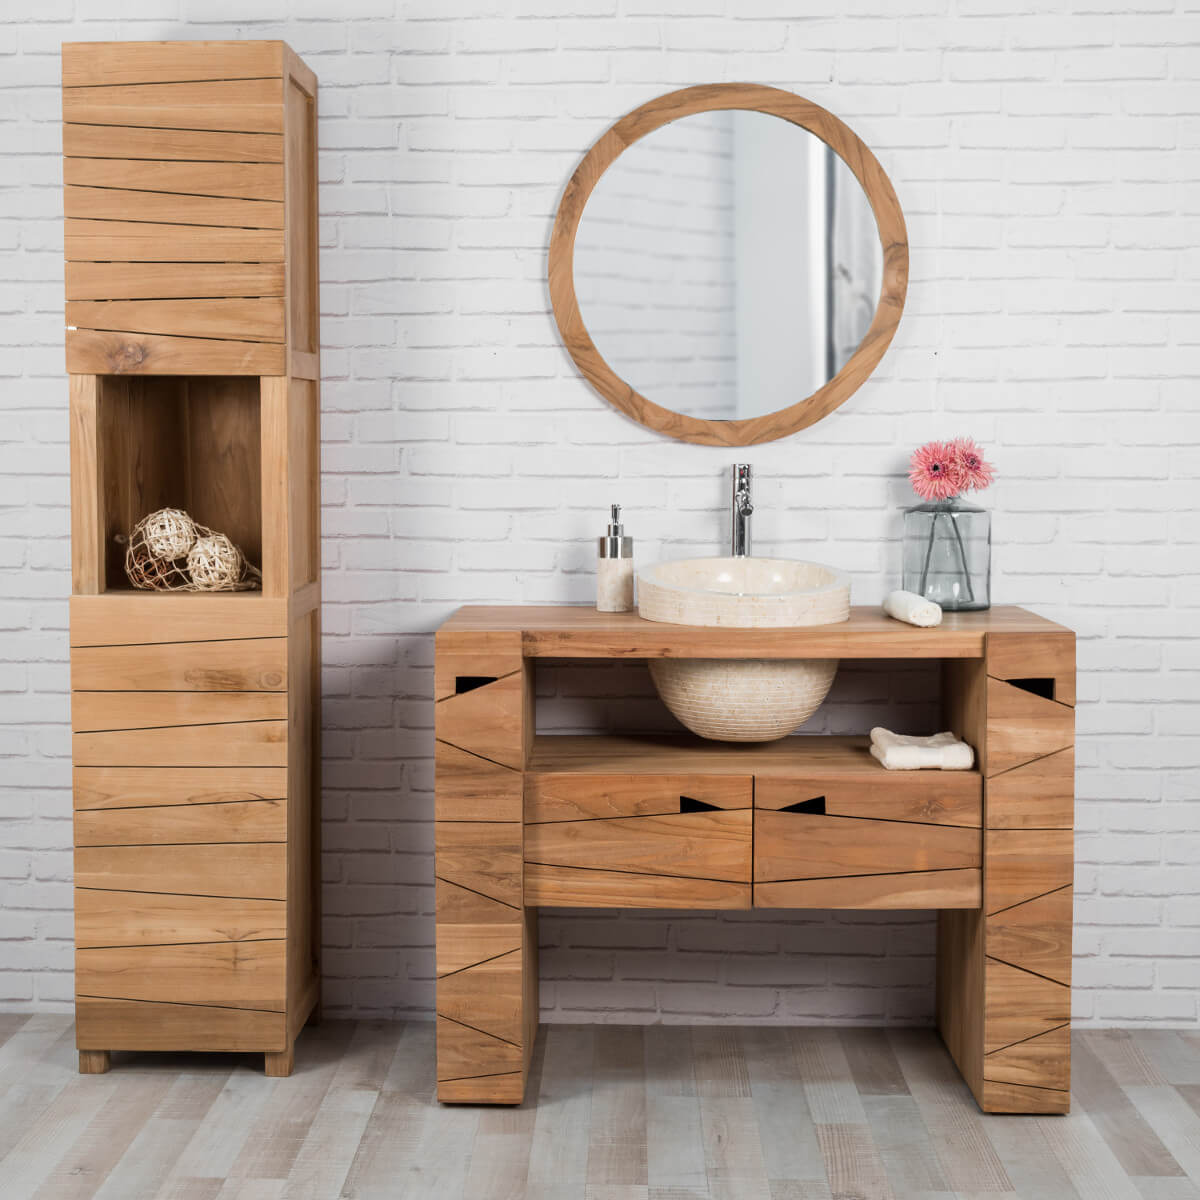 colonne de rangement en bois teck massif harmonie rectangle naturel h 190 cm. Black Bedroom Furniture Sets. Home Design Ideas